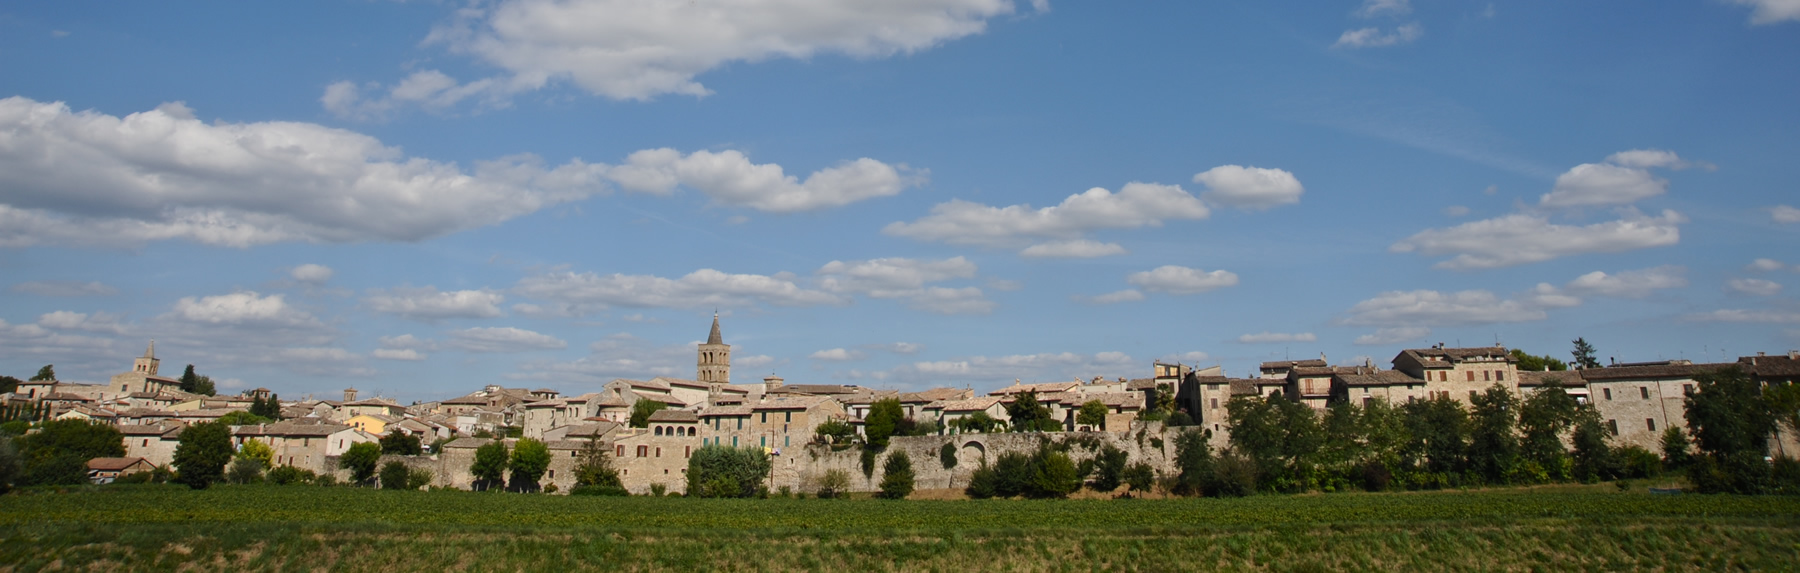 DISCOVERING THE VILLAGES OF UMBRIA